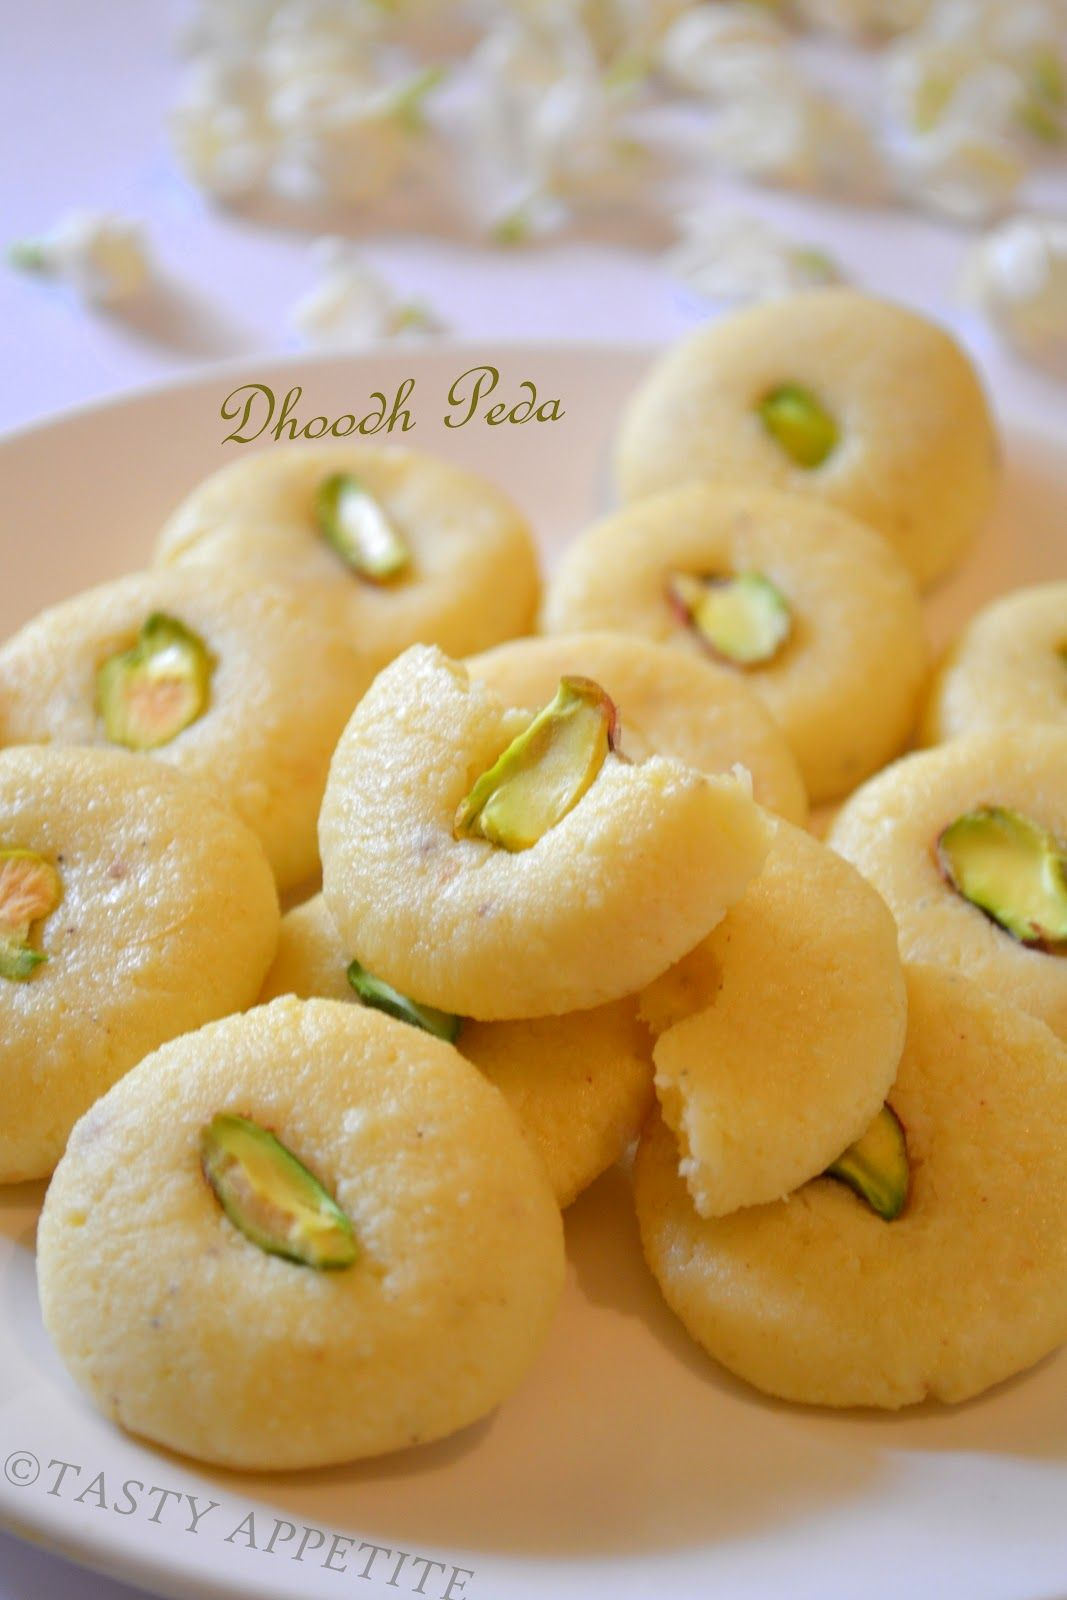 Doodh Peda - 'Milk Fudge' - is a rich and delicious sweet made up of milk, sugar and butter.